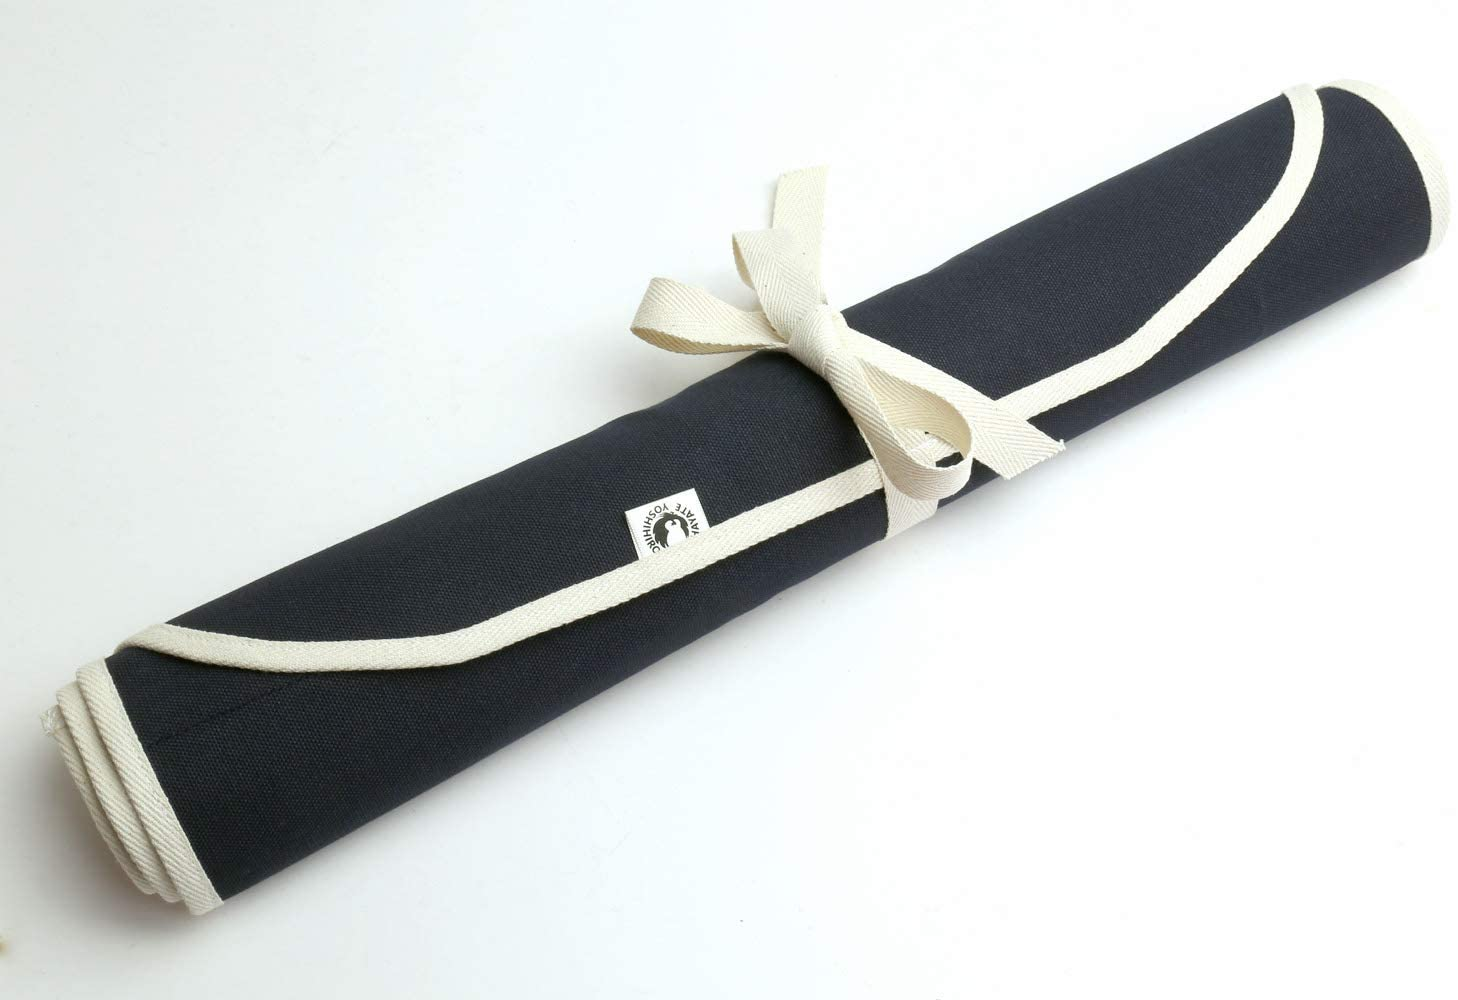 Best overall Japanese knife roll- Yoshihiro Cotton Knife Pouch rolled up